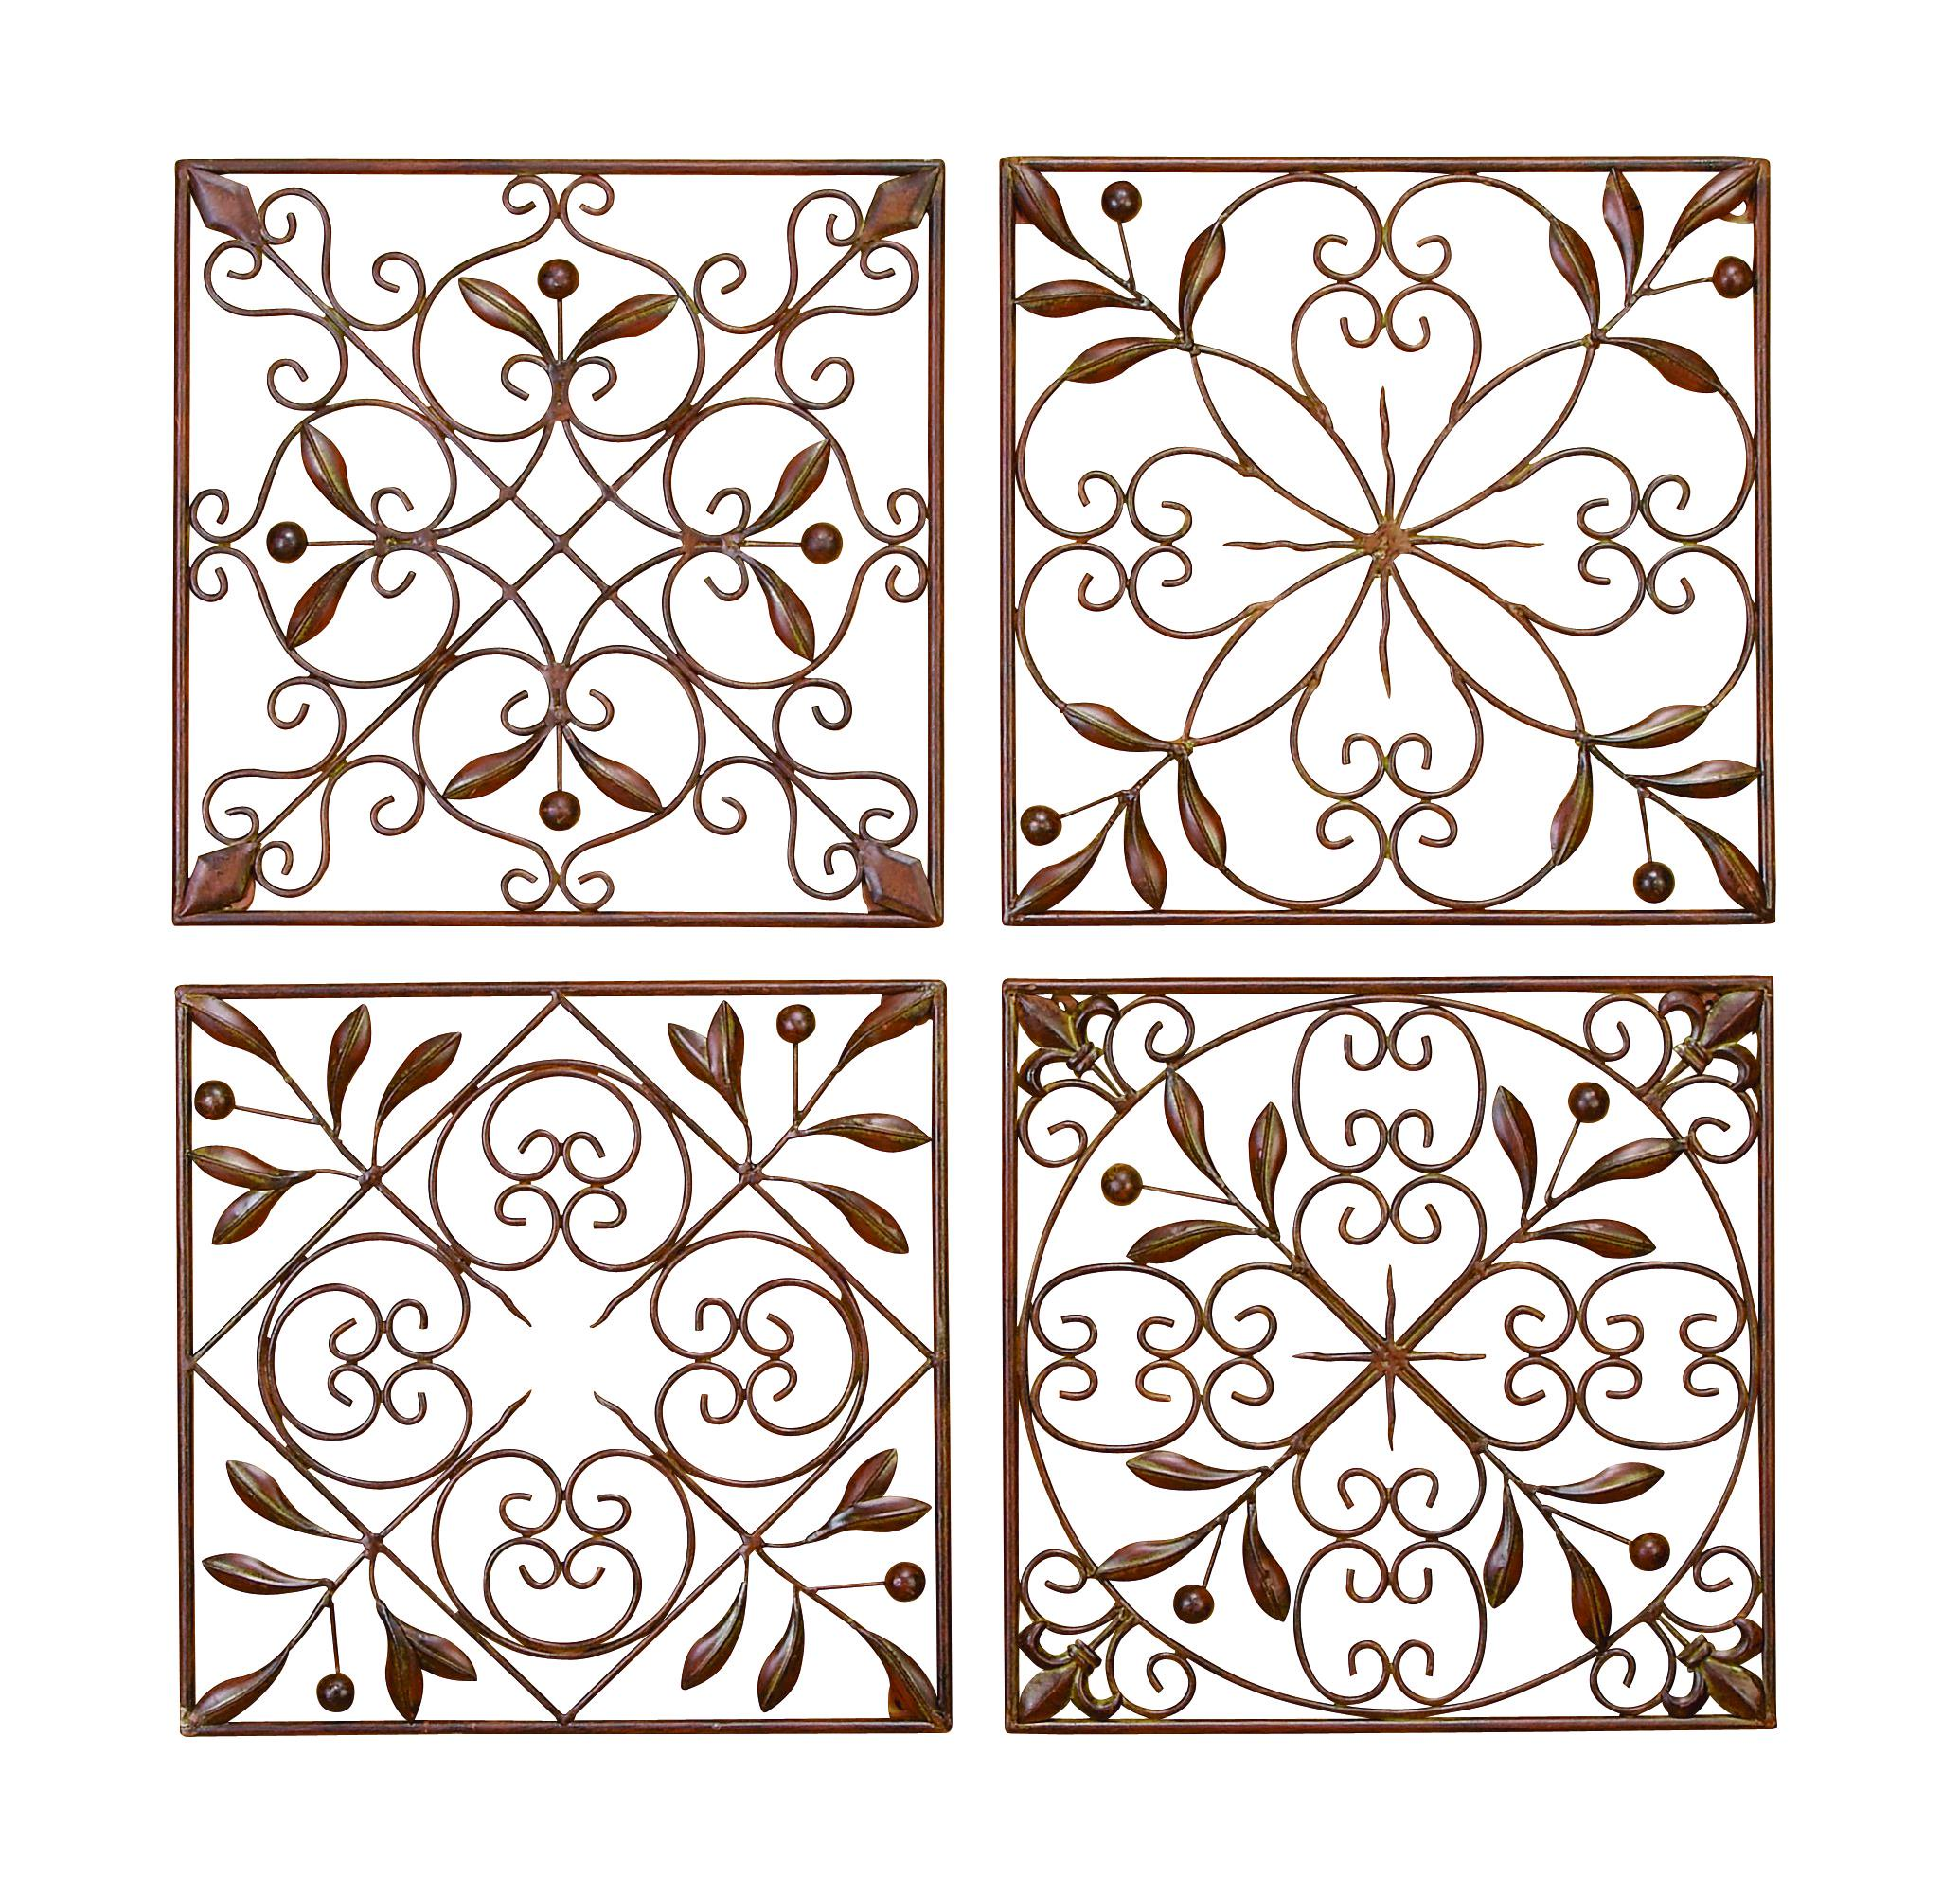 Gentil Metal Wall Decor, Set Of 4 Metal Filigrees To Hang Anywhere